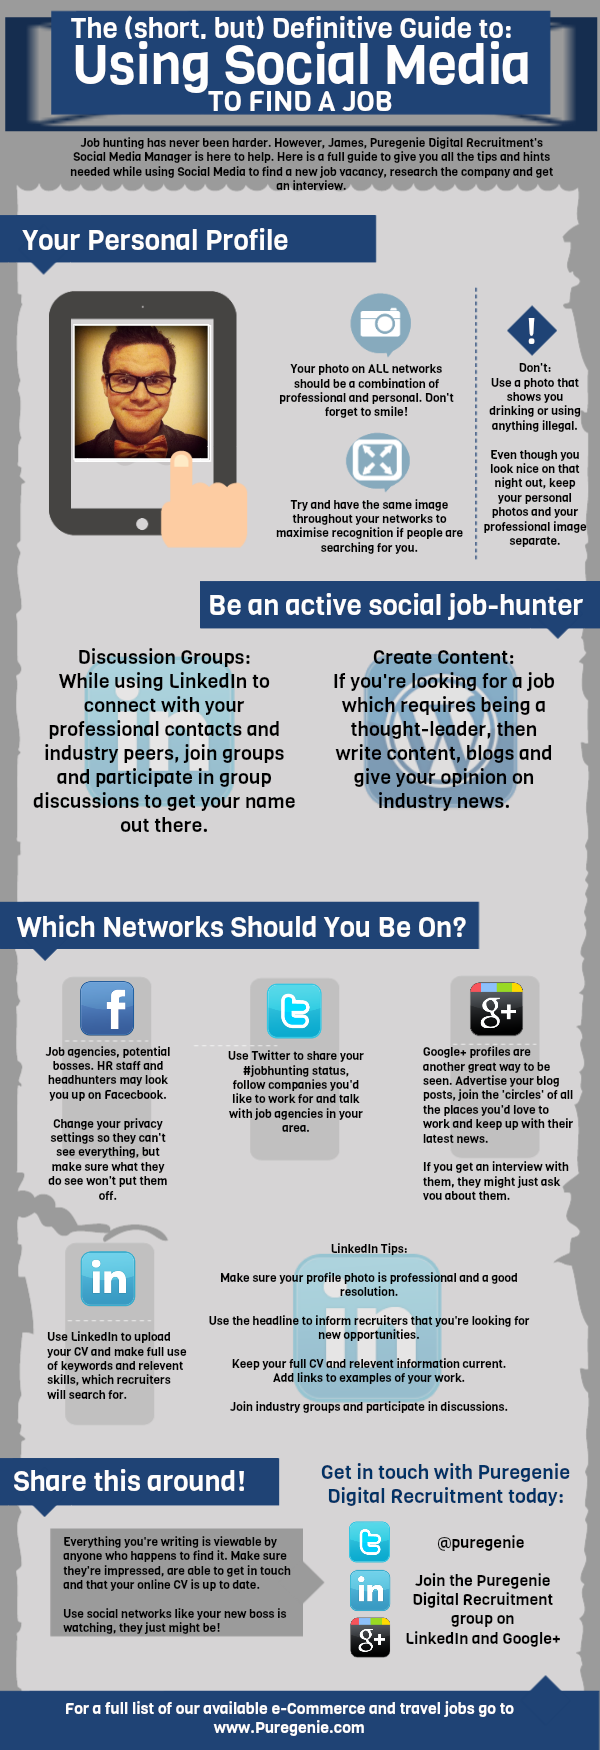 use social media to job hunt, social media jobs, find a job on social media, find jobs on linkedin, find jobs on twitter